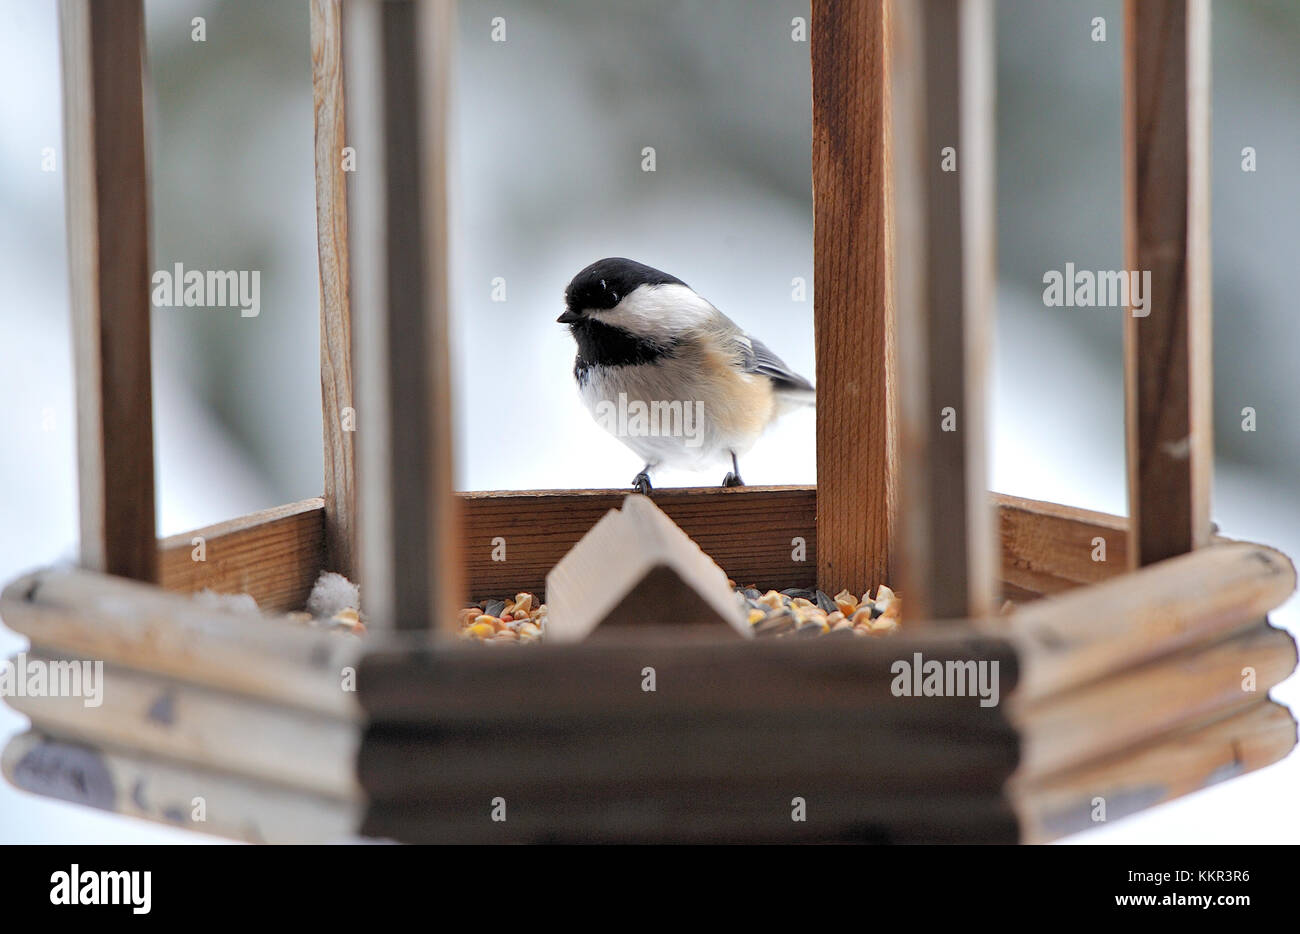 A Black-capped Chickadee bird perched on the edge of a bird feeder checking out the seeds in the feeder. - Stock Image